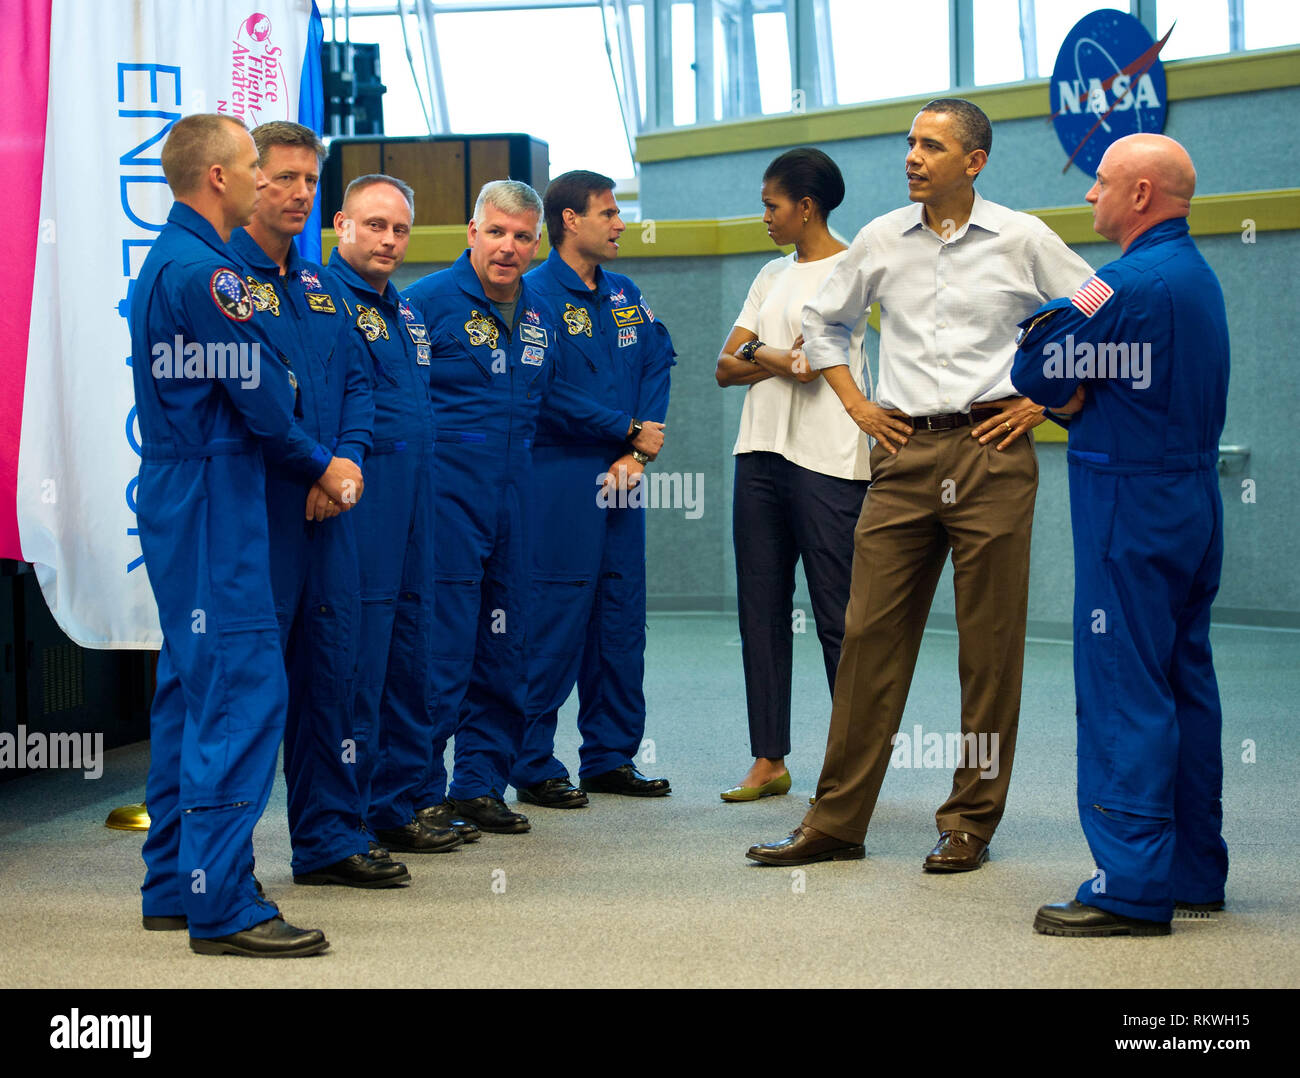 Cape Canaveral, Florida, USA. 29th Apr, 2011. United States President Barack Obama and First Lady Michelle Obama meet with STS-134 space shuttle Endeavor commander Mark Kelly, right, and shuttle astronauts, from left, Andrew Feustel, European Space Agency's Roberto Vittori, Michael Fincke, Gregory H. Johnson, and Greg Chamitoff, after their launch was scrubbed, Friday, April 29, 2011, at Kennedy Space Center in Cape Canaveral, Florida.Mandatory Credit: Bill Ingalls/NASA via CNP Credit: Bill Ingalls/CNP/ZUMA Wire/Alamy Live News - Stock Image